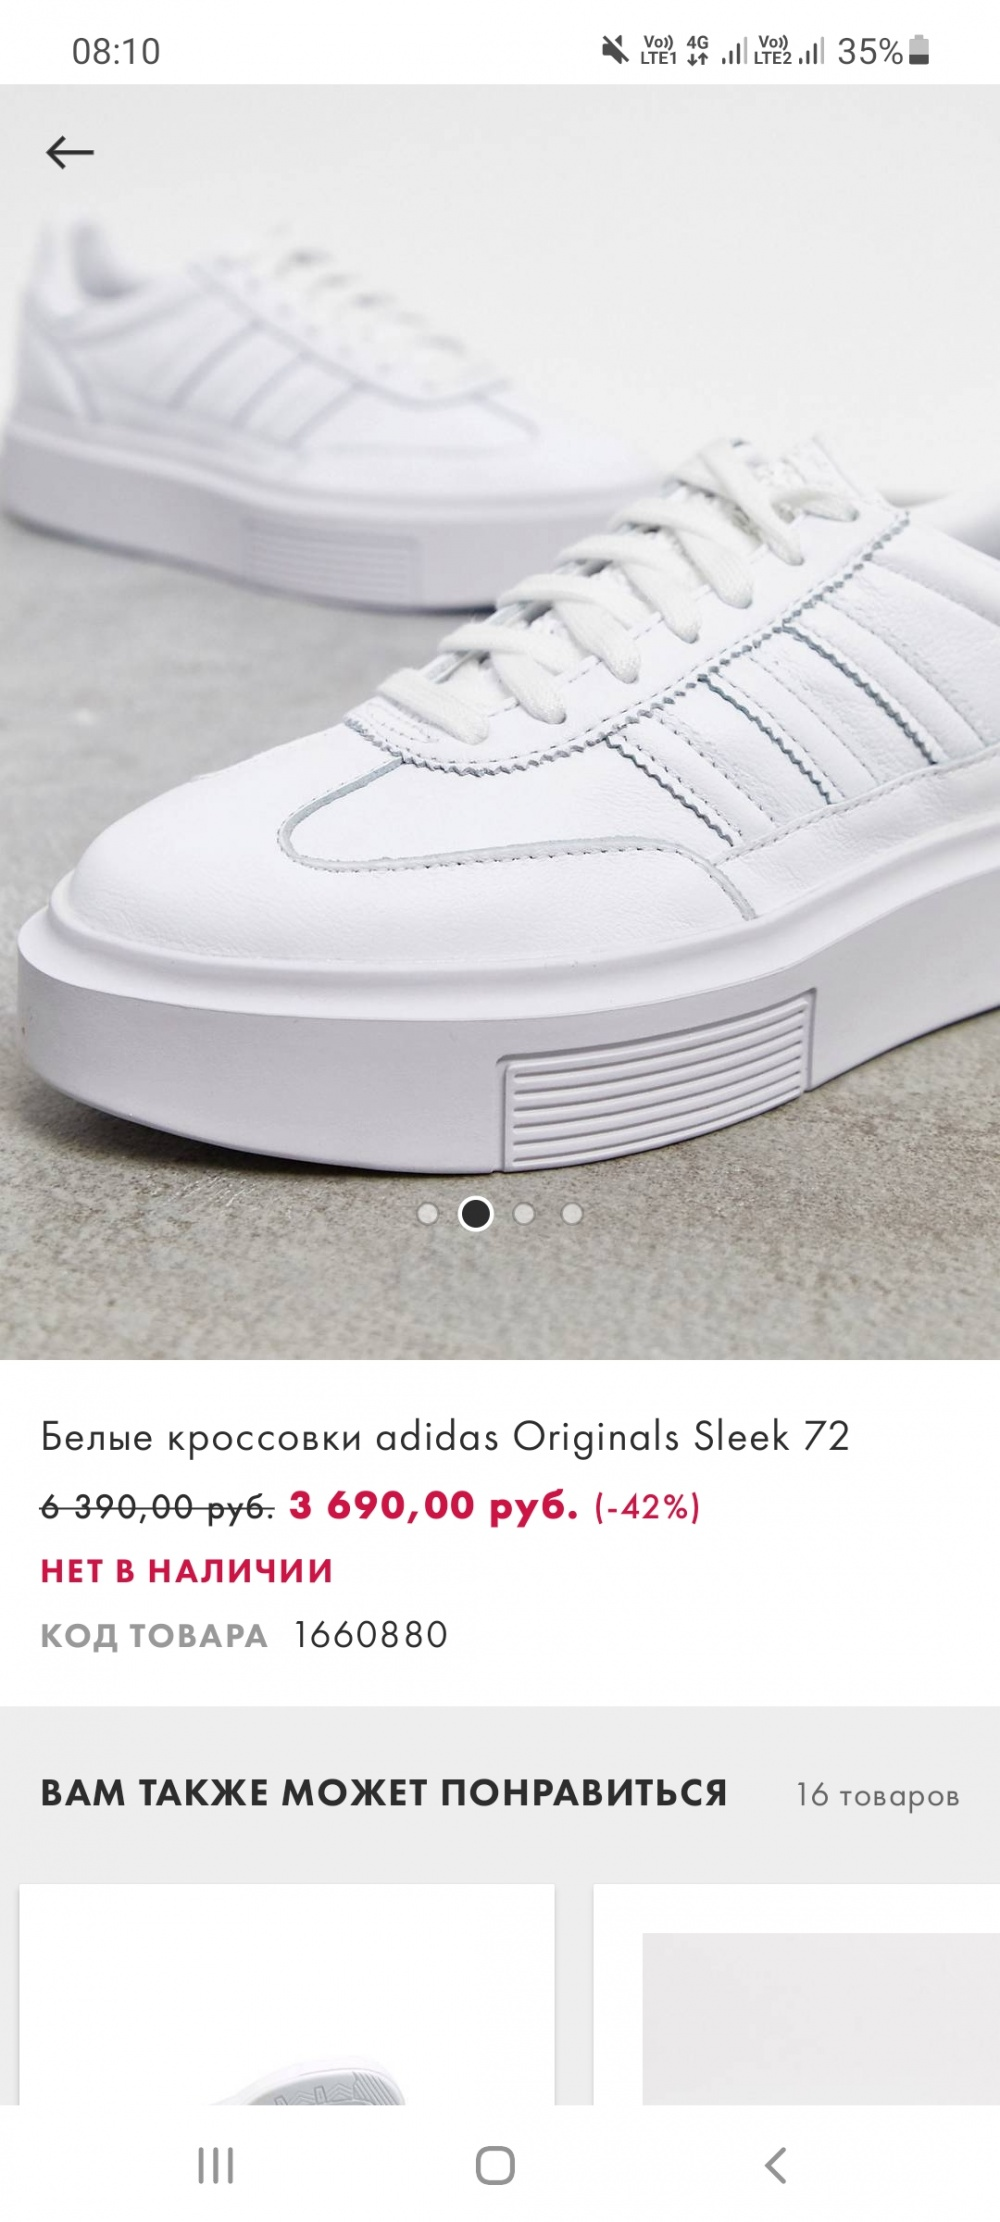 Кеды-сникерсы  adidas Originals sleek 72. Размер 38 рос.